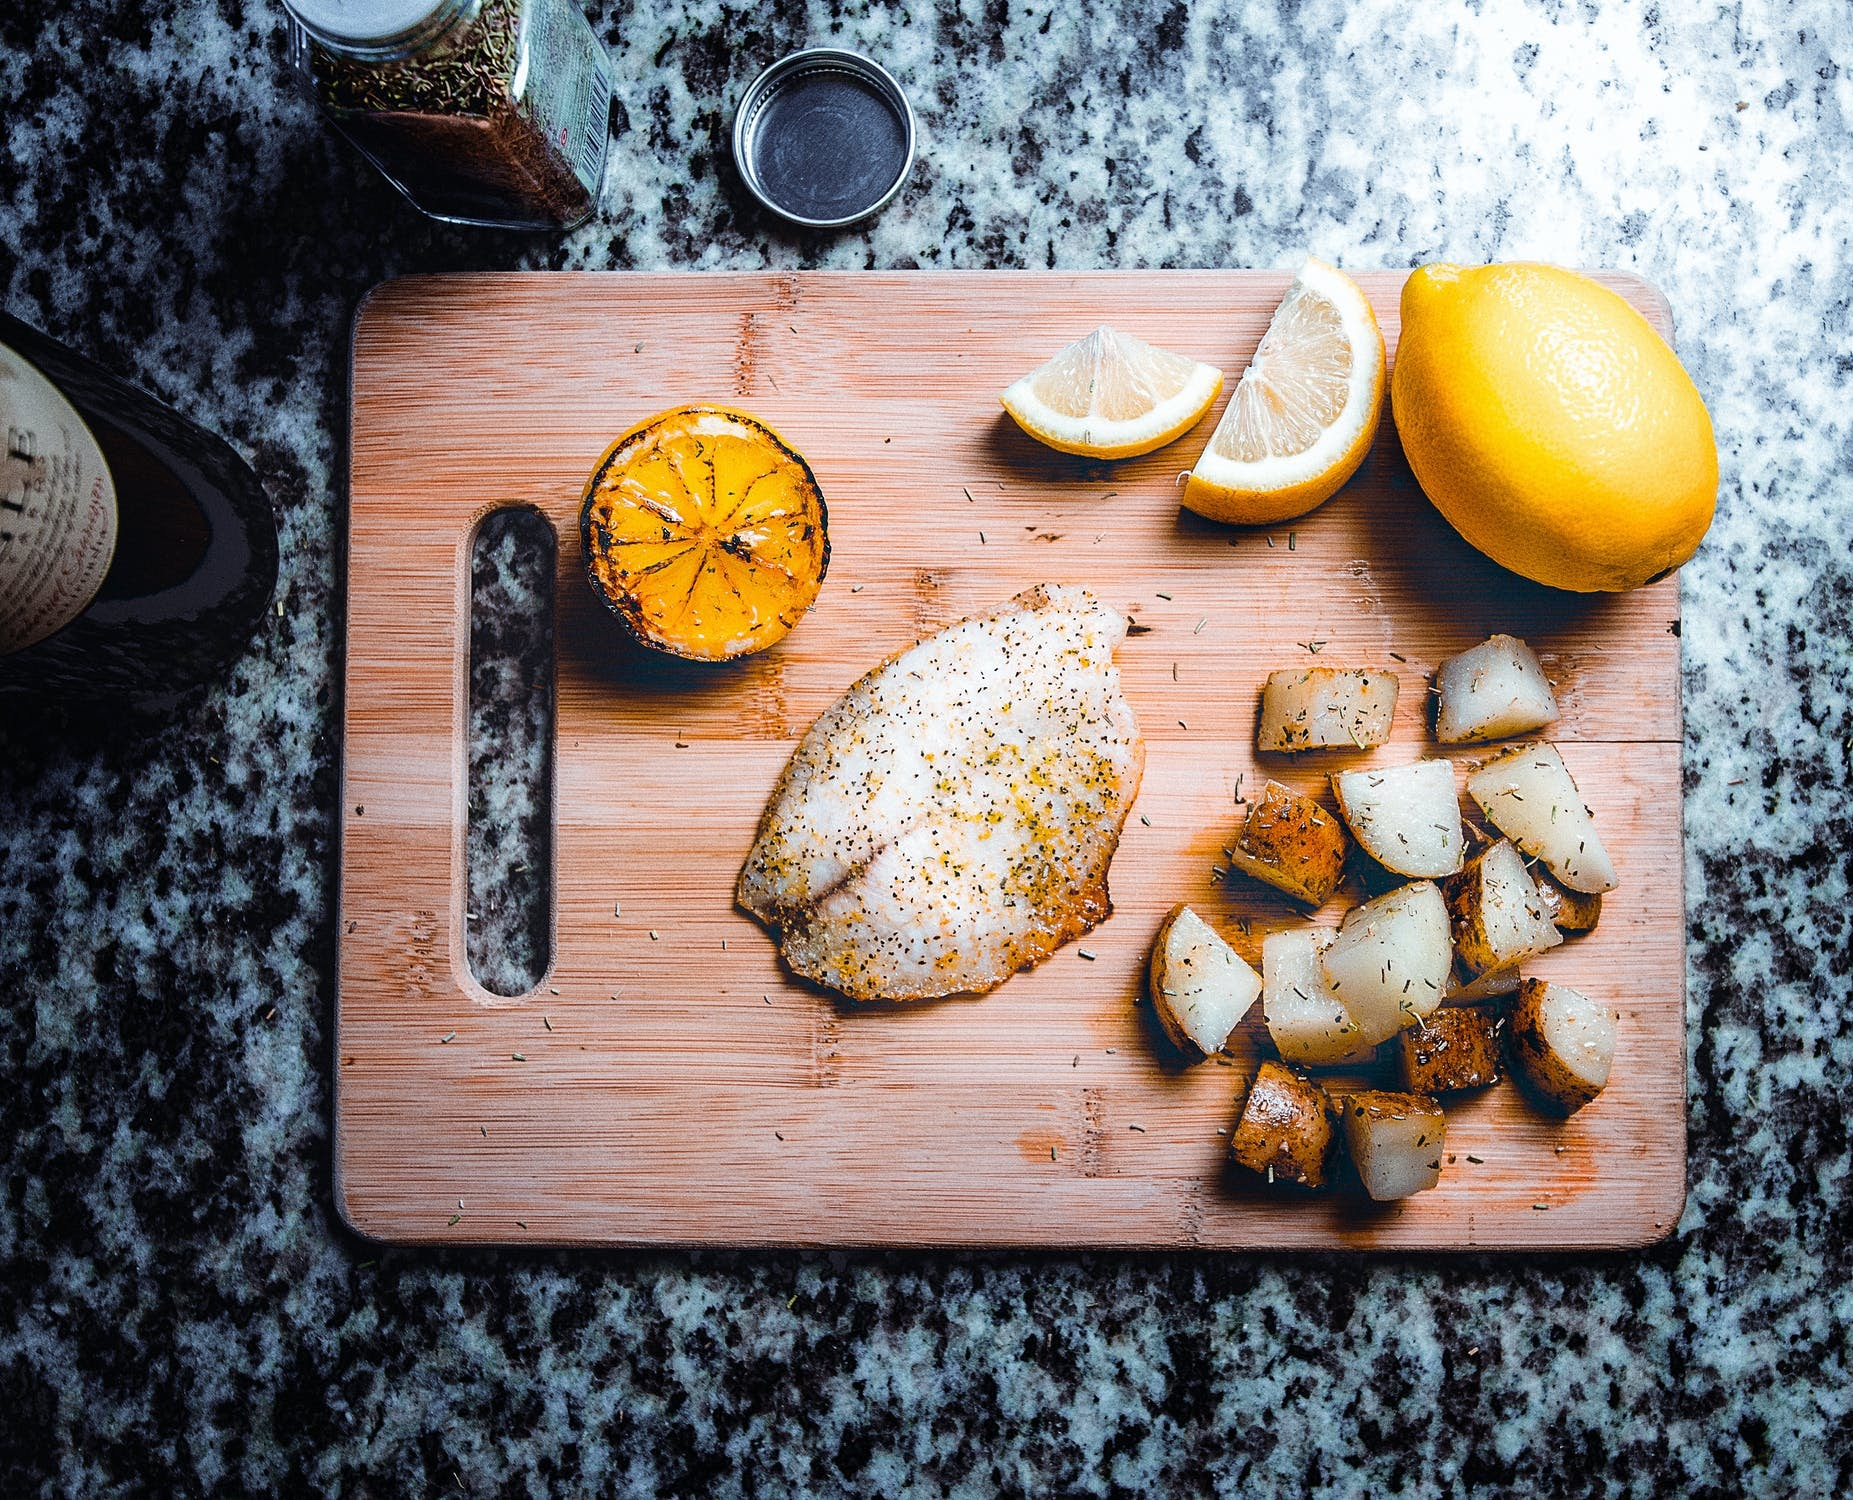 Seasoned fish on a cutting board with lemon and potatoes.